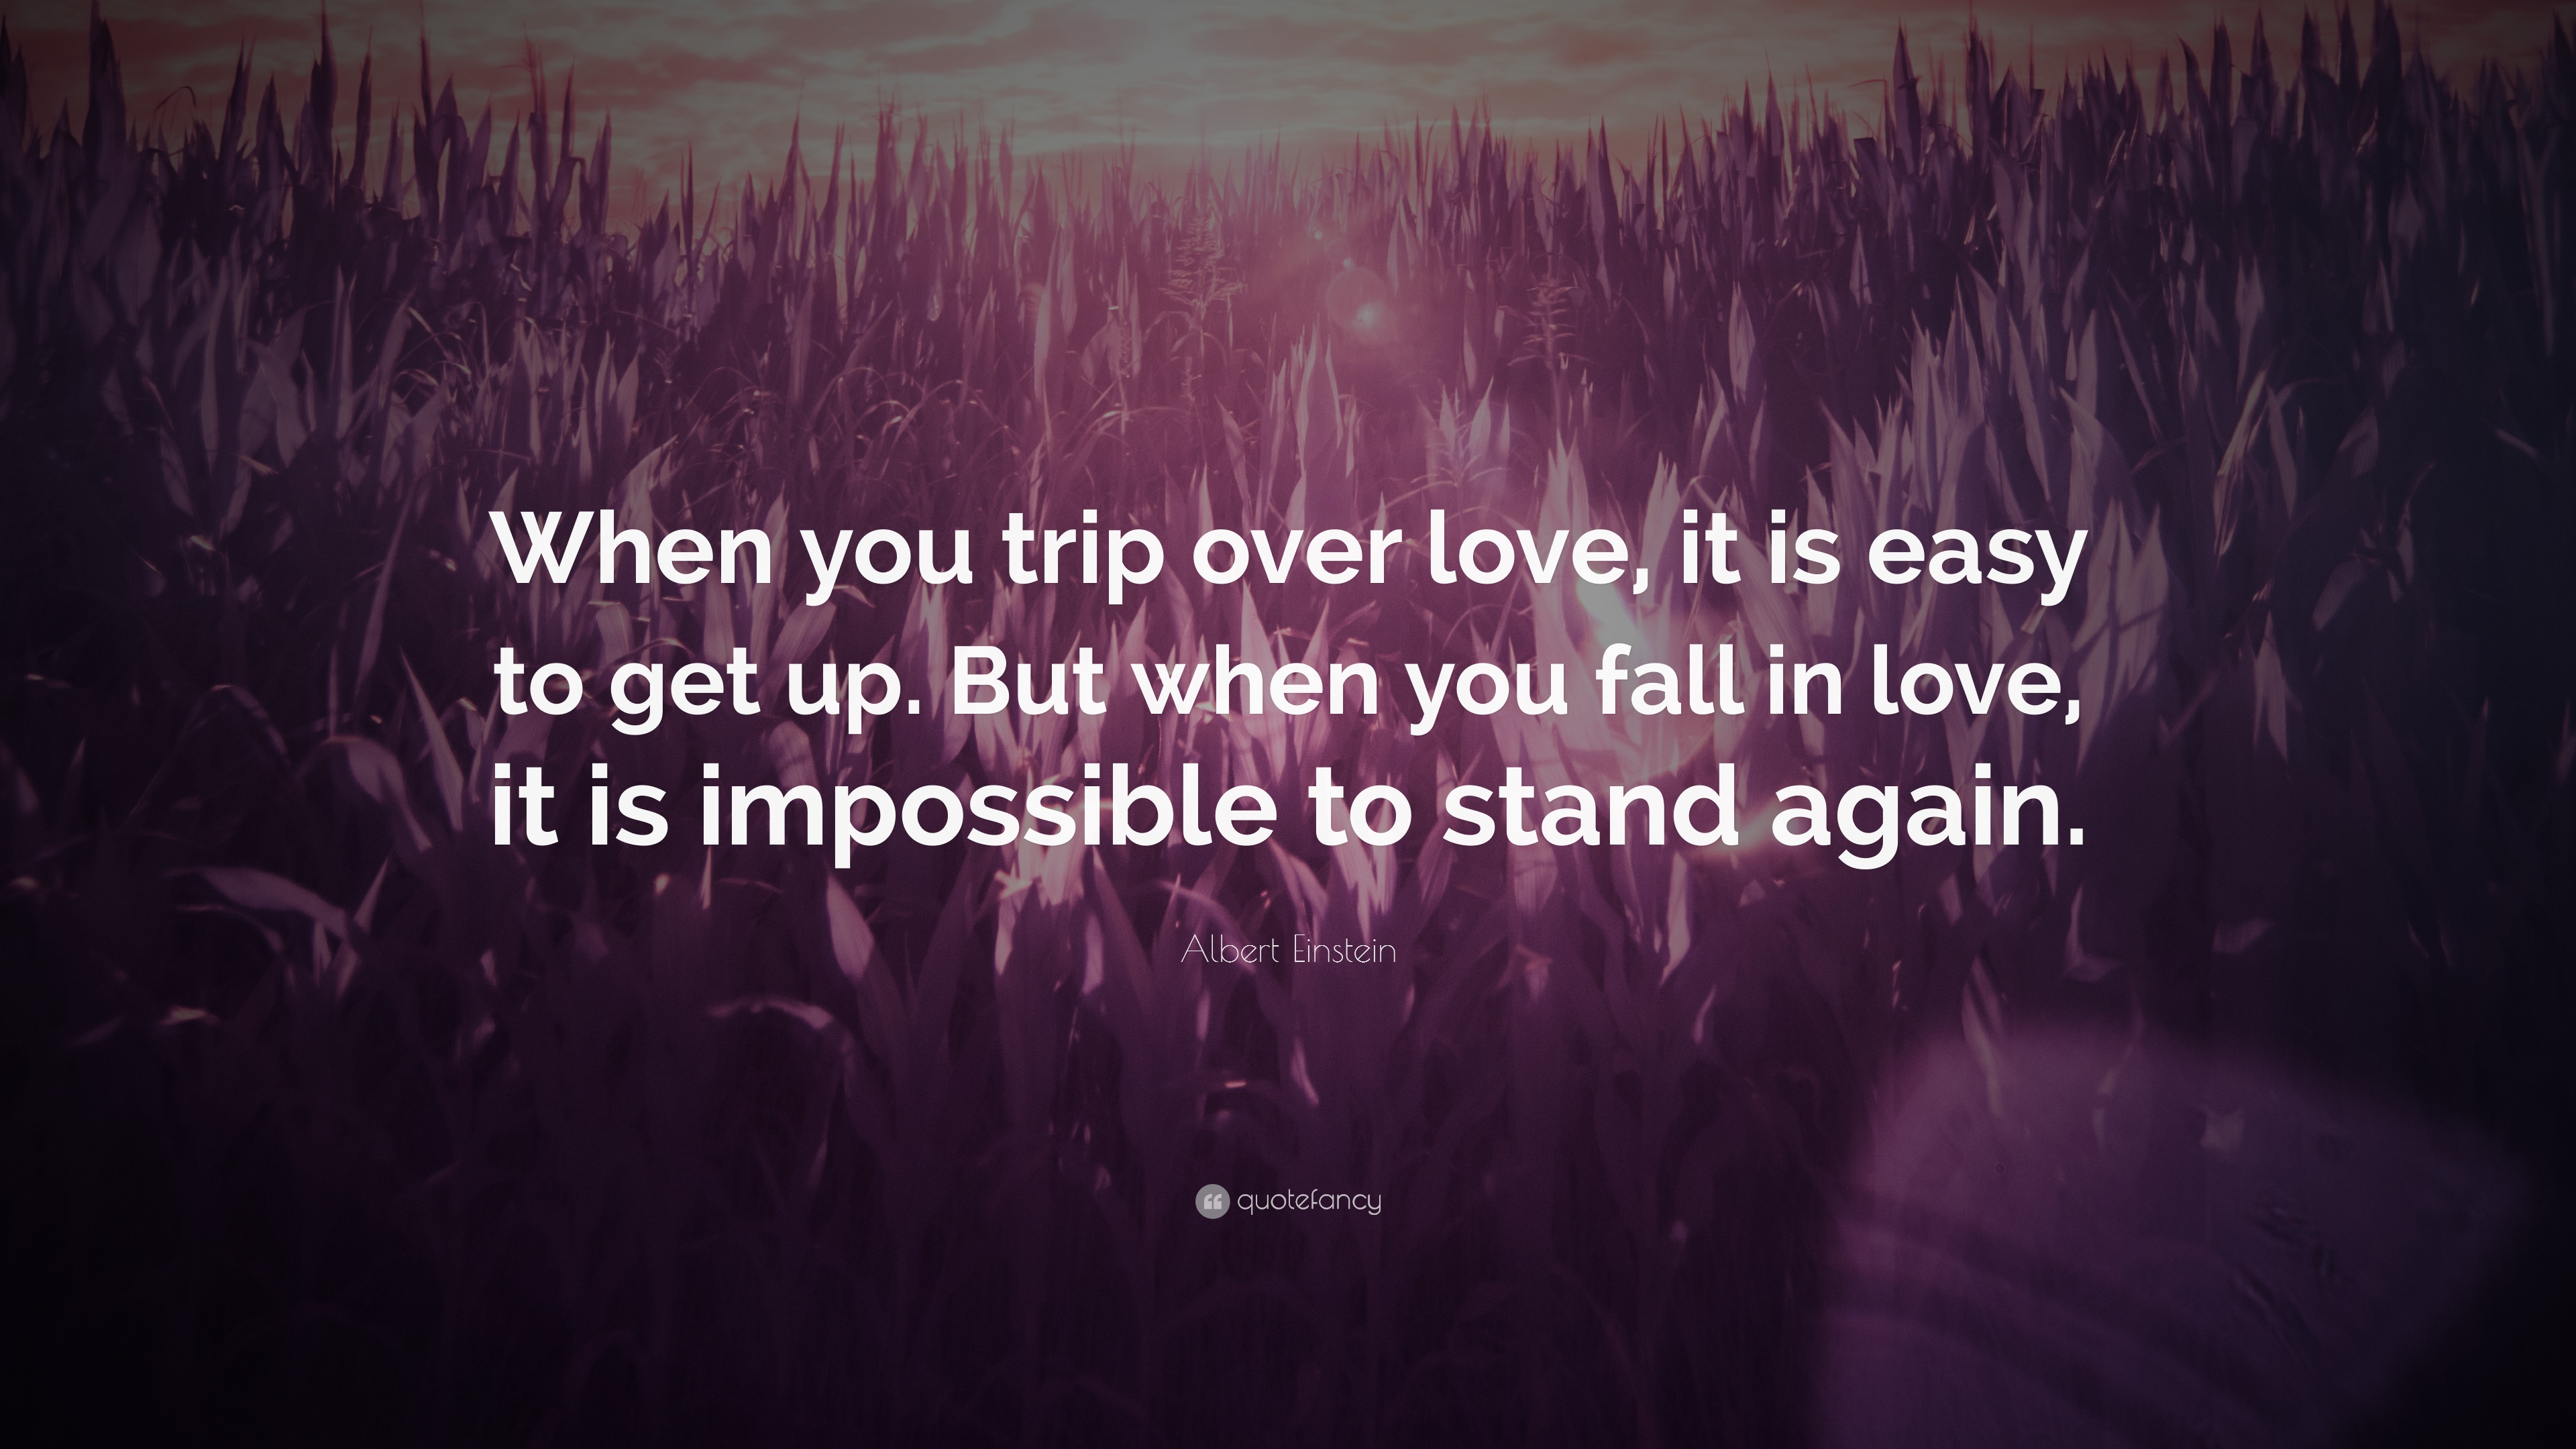 In Love Quotes Gorgeous Love Quotes 26 Wallpapers  Quotefancy